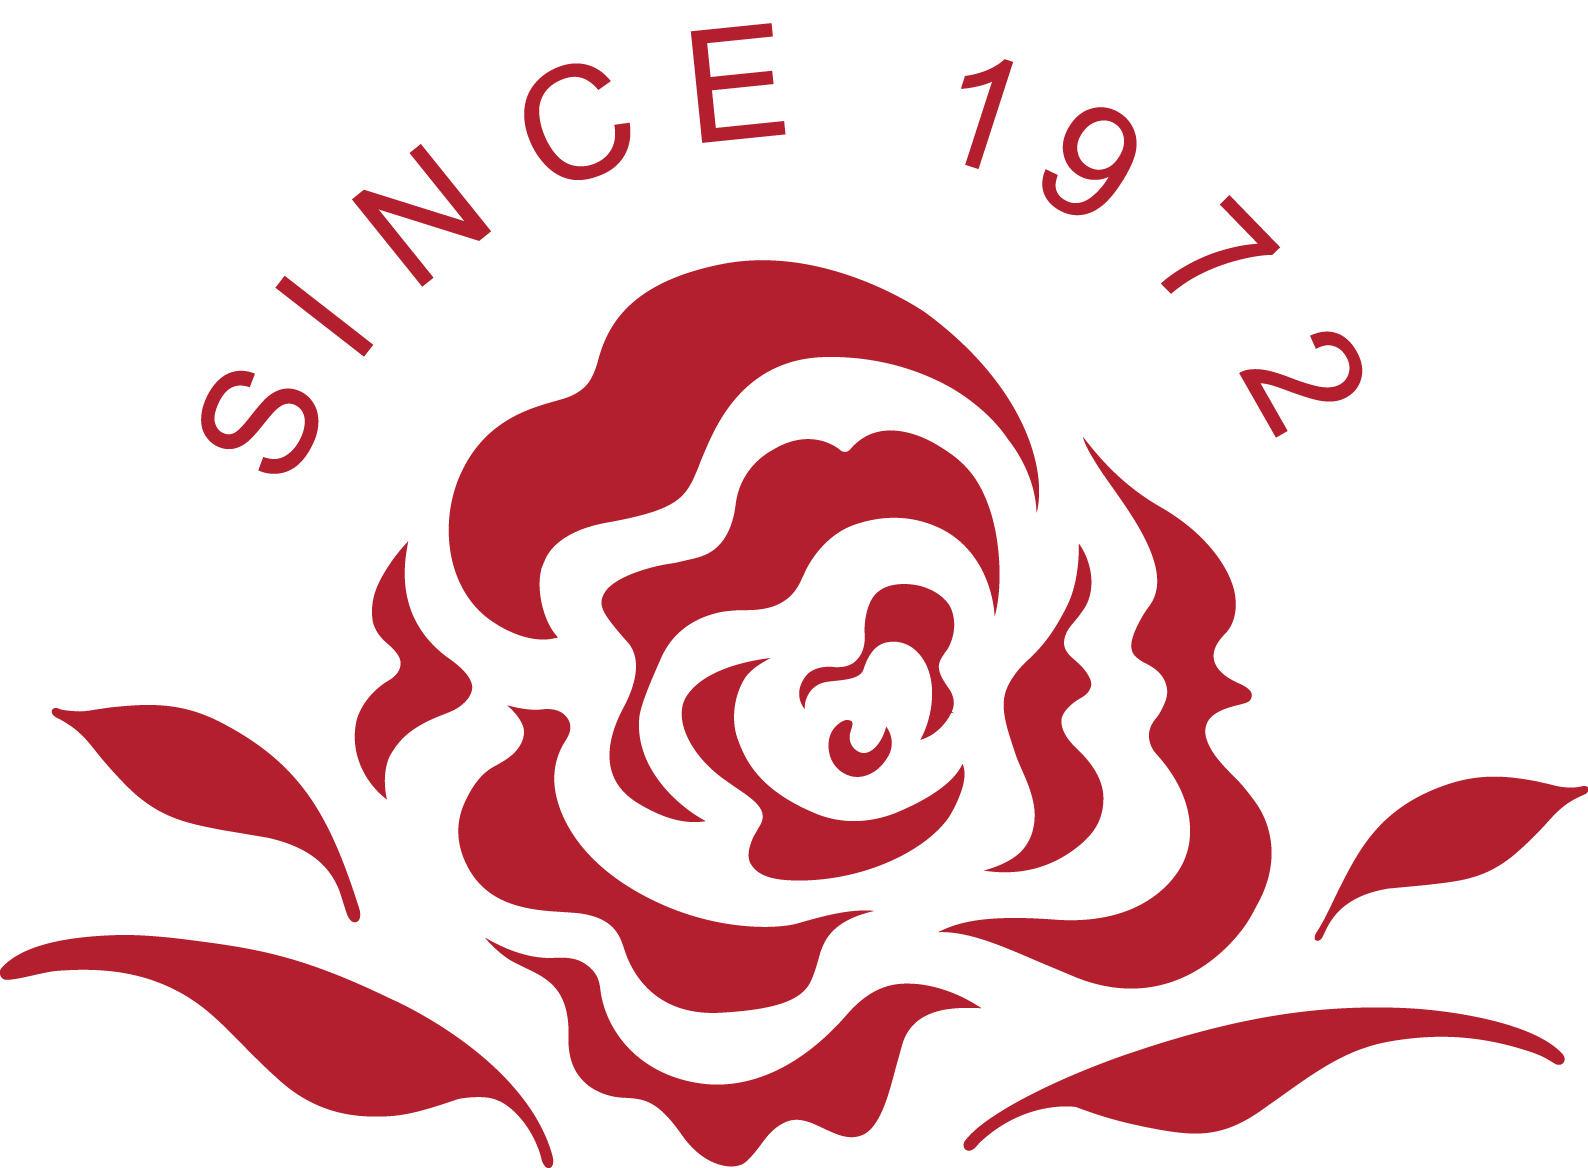 since-1972-red-rose-icon.jpg